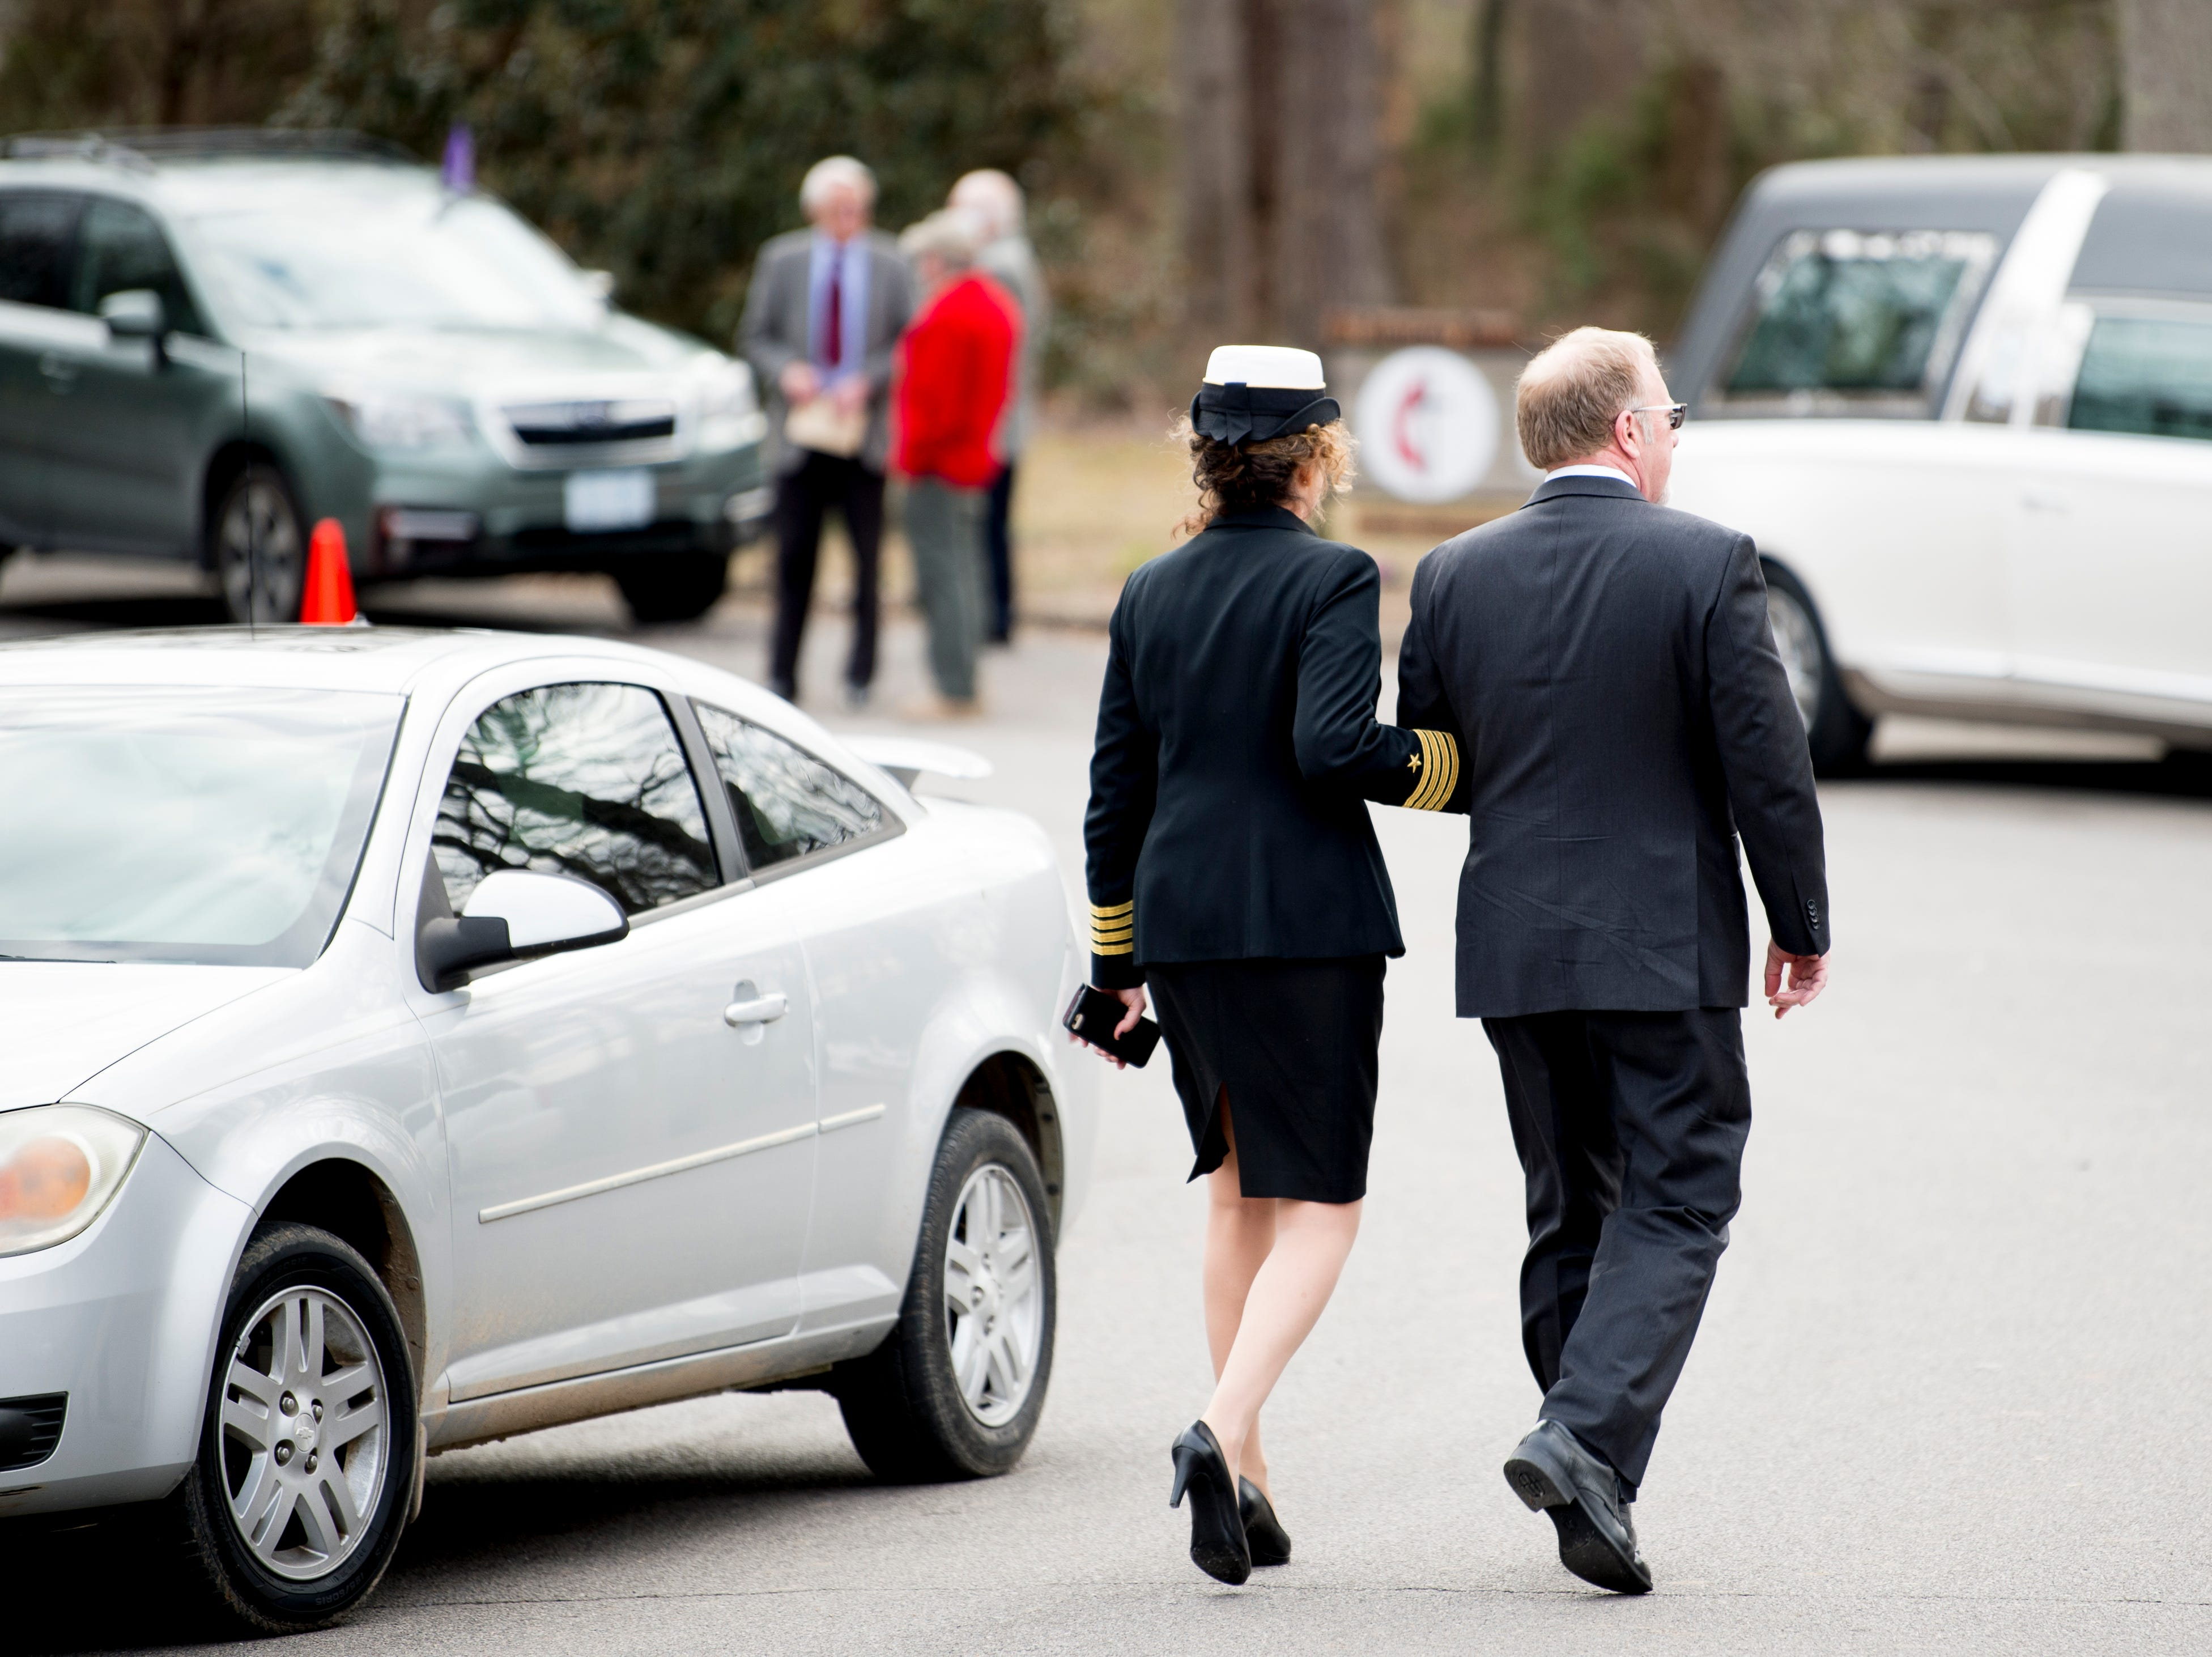 Attendees arrive to a funeral service for Rosemary Mariner, the US Navy's first female fighter pilot, at Norris United Methodist Church in Norris, Tennessee on Saturday, February 2, 2019. Mariner died January 24th of cancer.